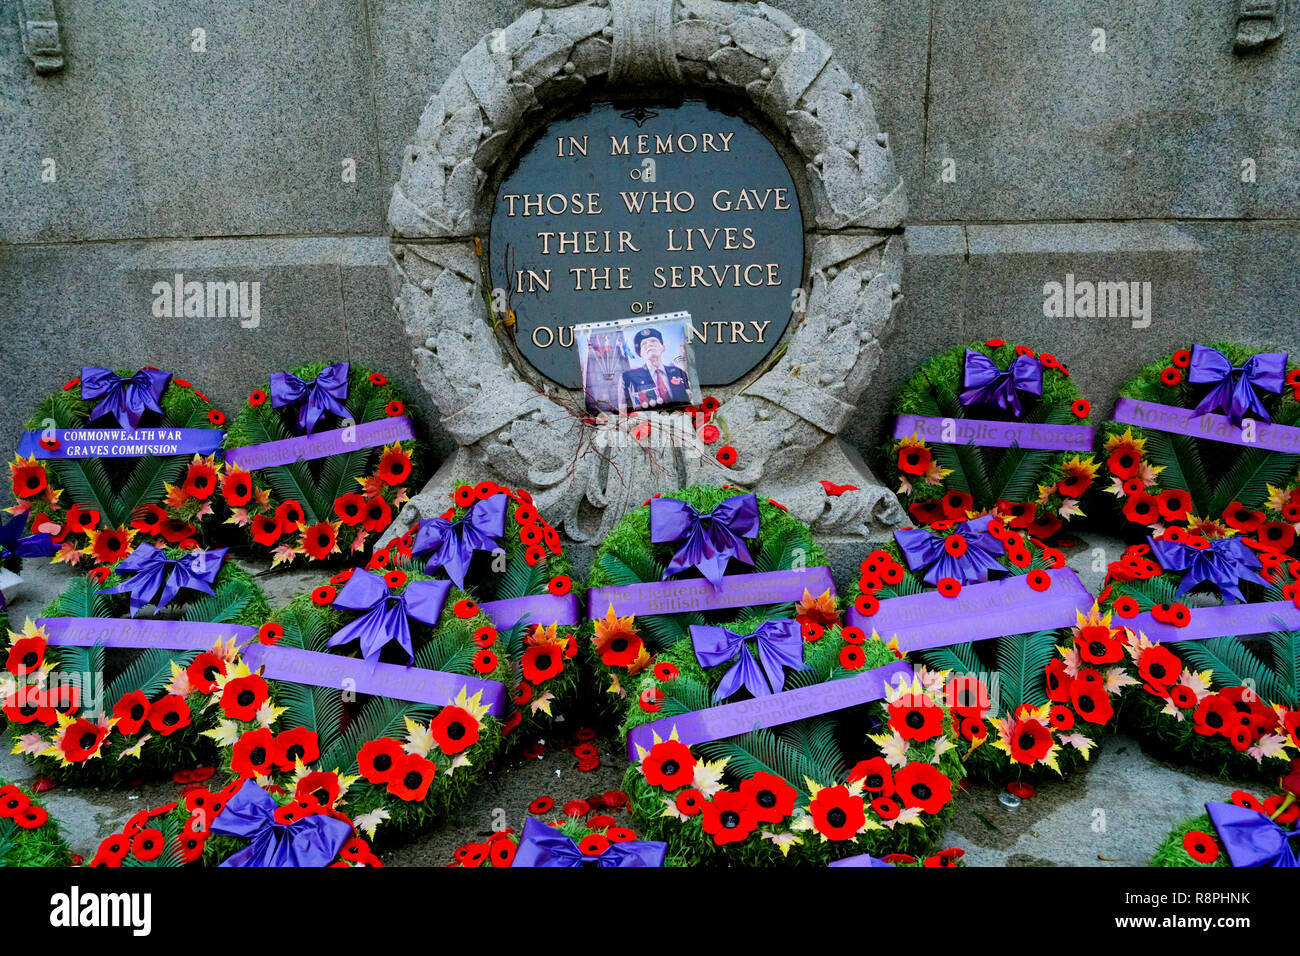 Remembrance Day wreaths, Cenotaph, Vancouver, British Columbia, Canada - Stock Image